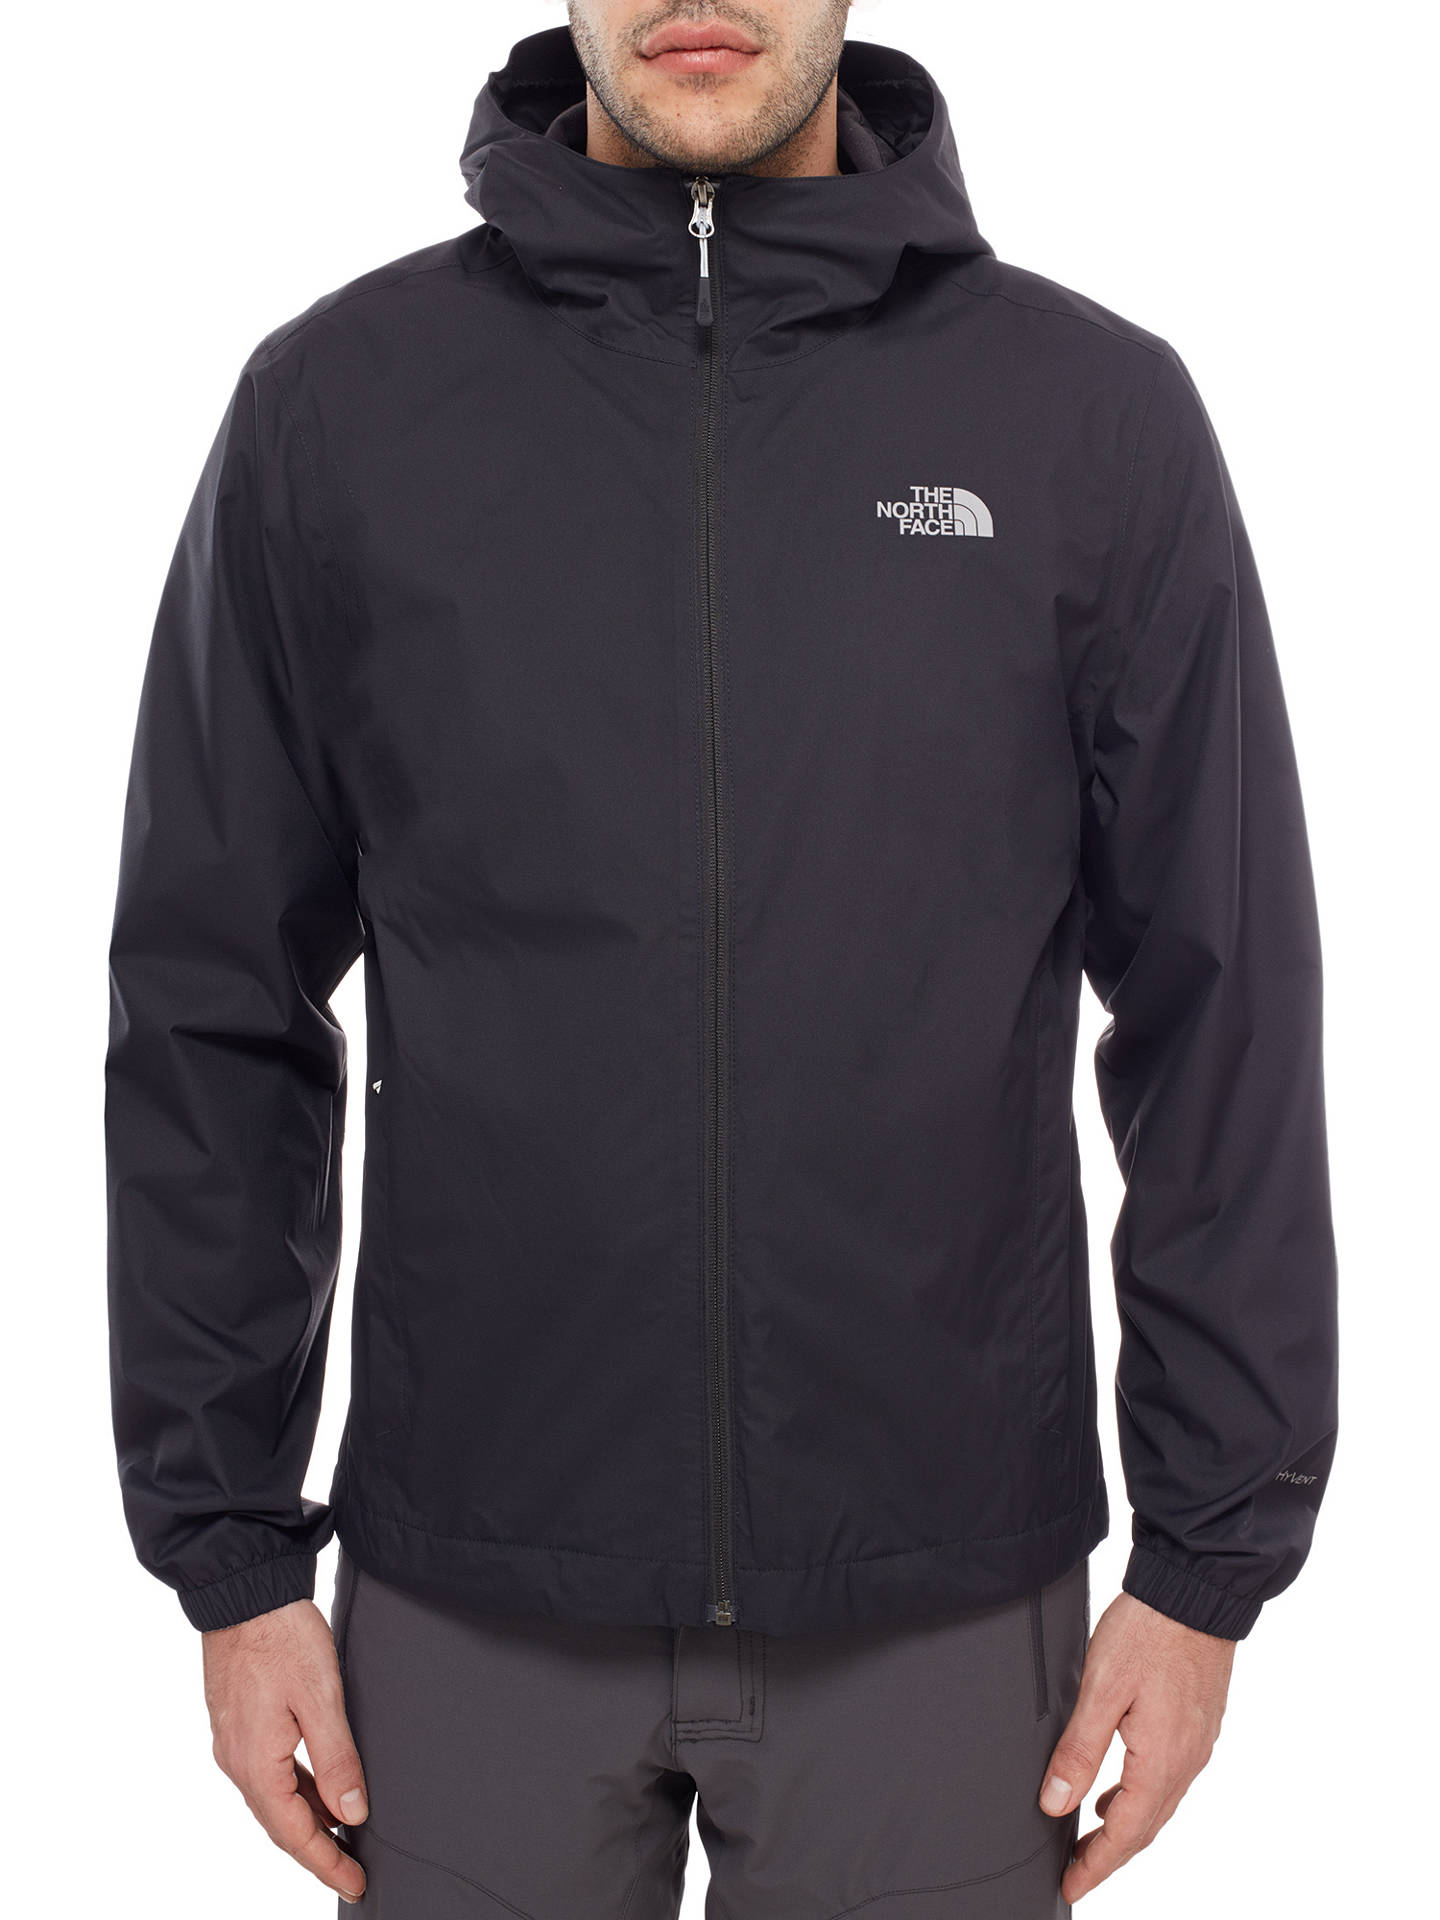 0ac324bcd The North Face Quest Waterproof Men's Jacket, Black